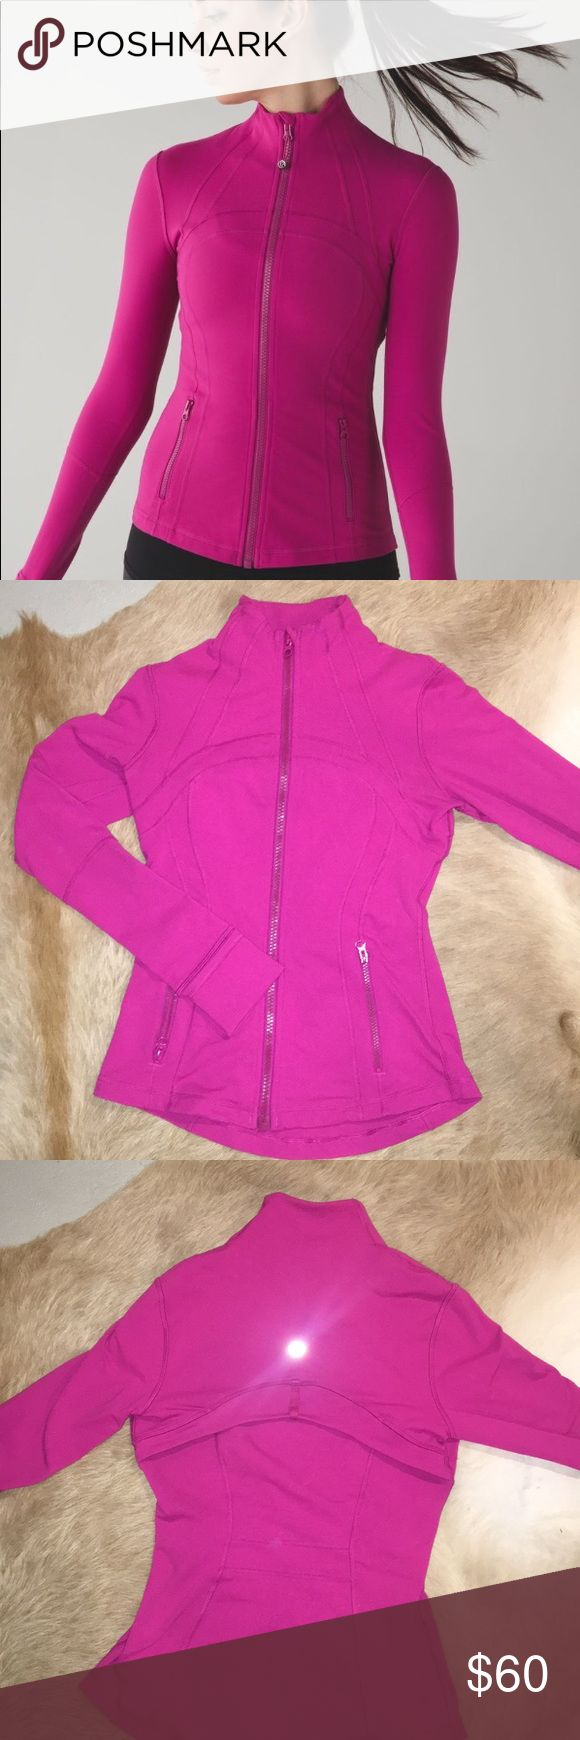 Lululemon Define Jacket in Raspberry Very good condition. Only worn a couple times. Looks and feels new. lululemon athletica Jackets & Coats